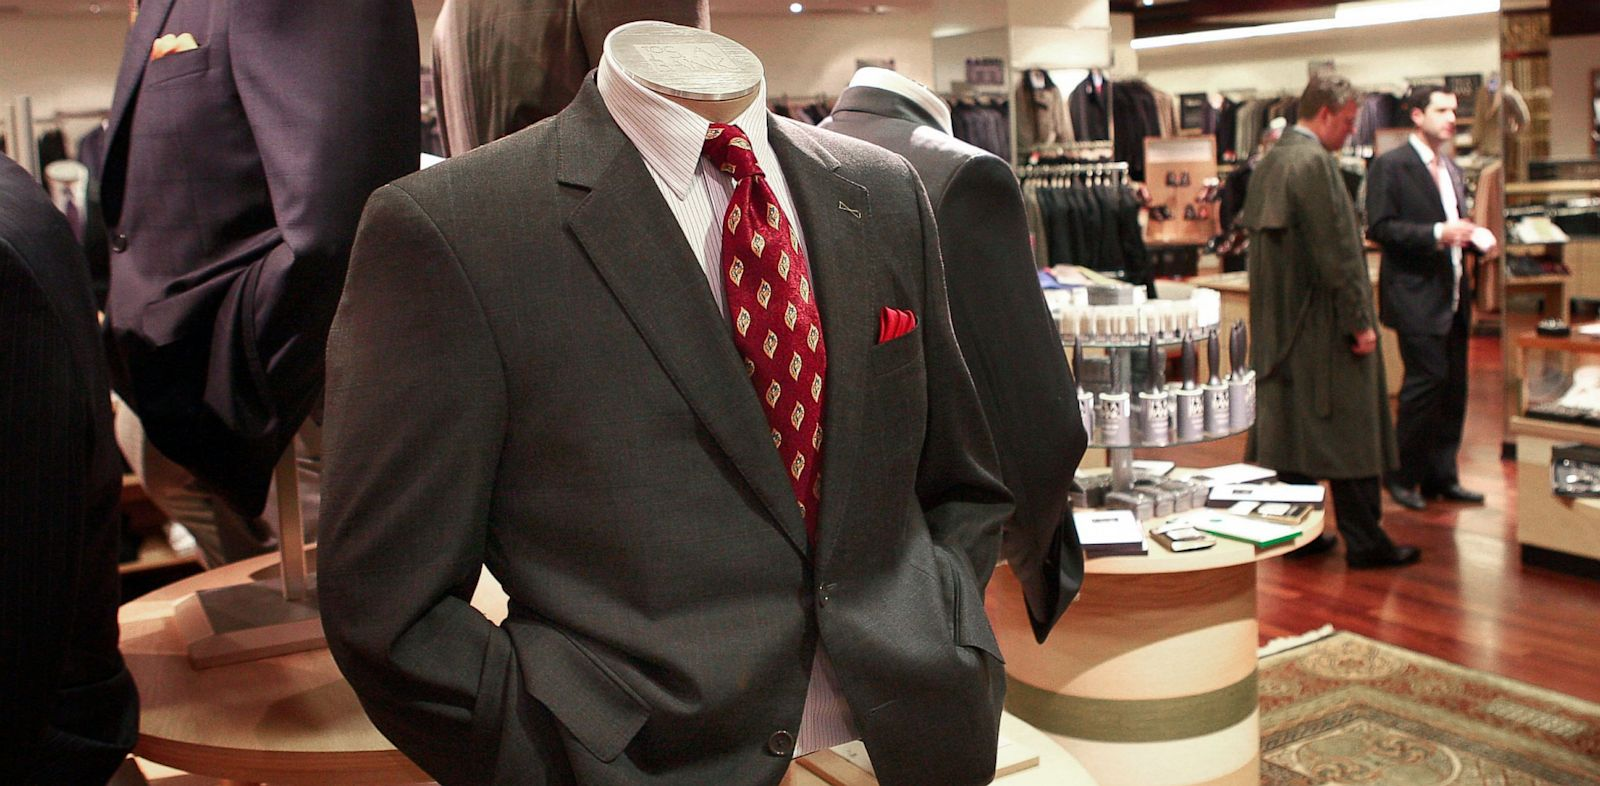 PHOTO: Suits are offered for sale at a Jos. A. Bank store March 18, 2009 in Chicago.